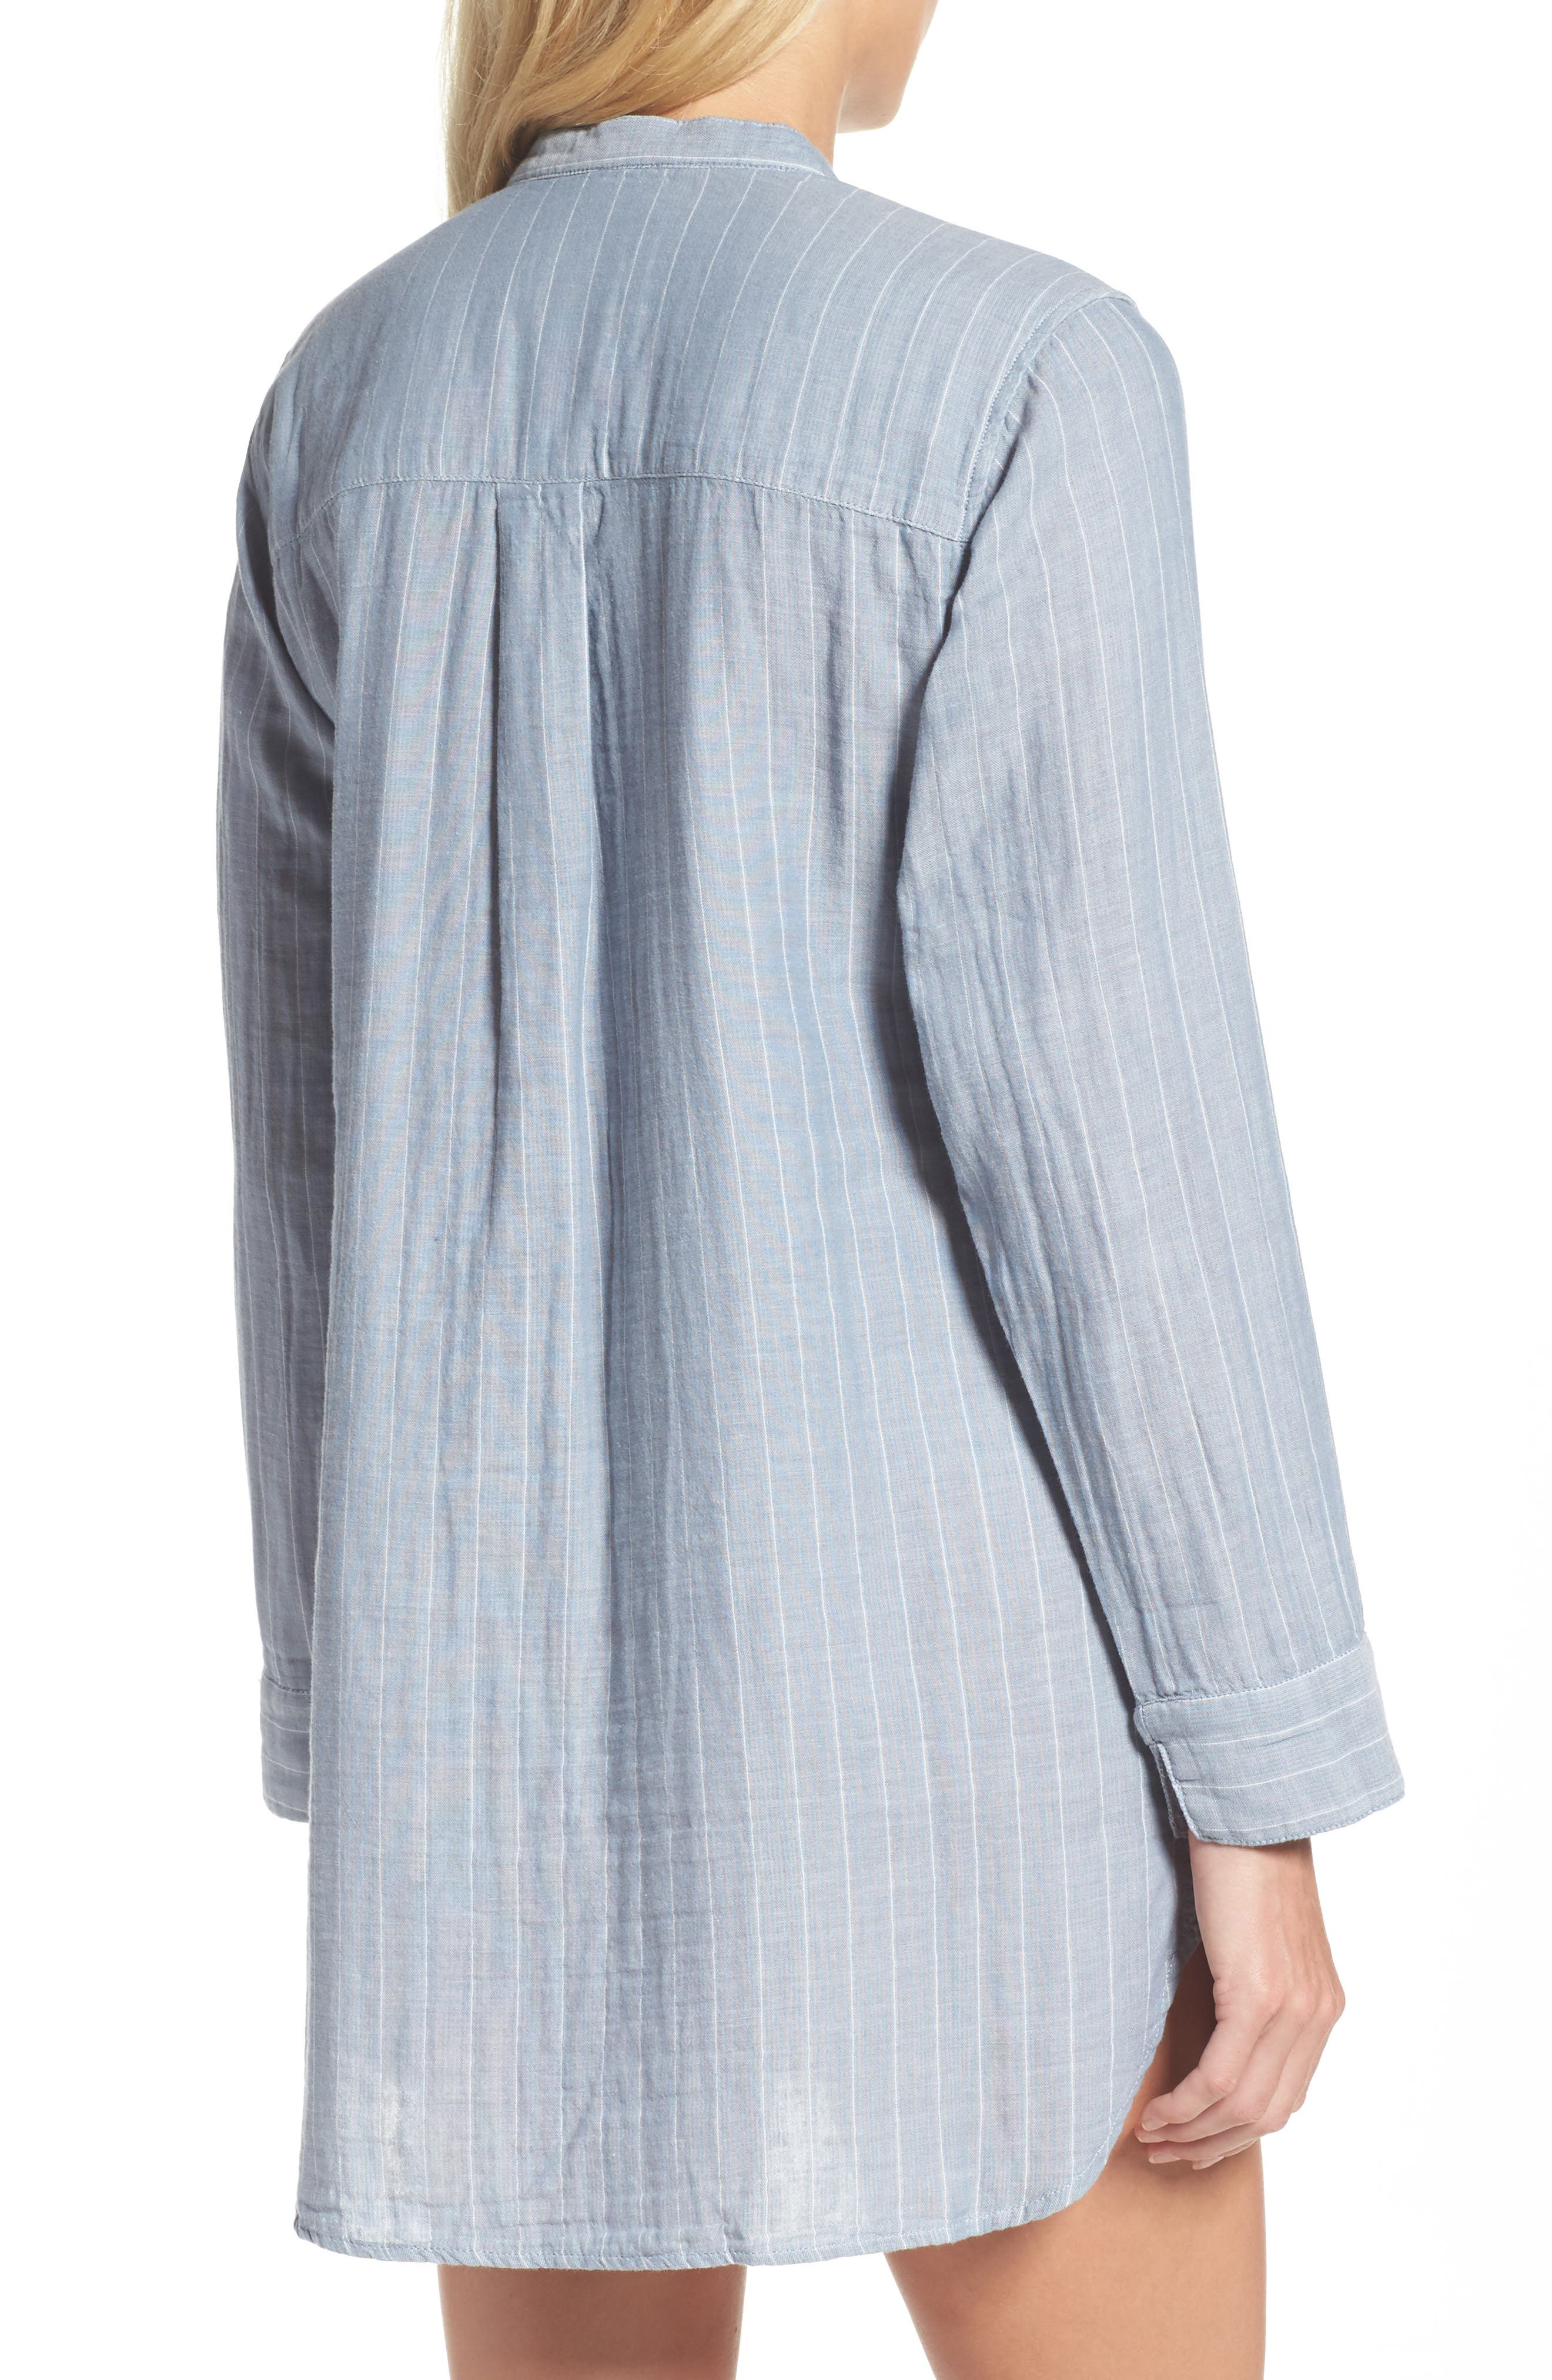 UGG Vivian Stripe Sleep Shirt,                             Alternate thumbnail 2, color,                             400